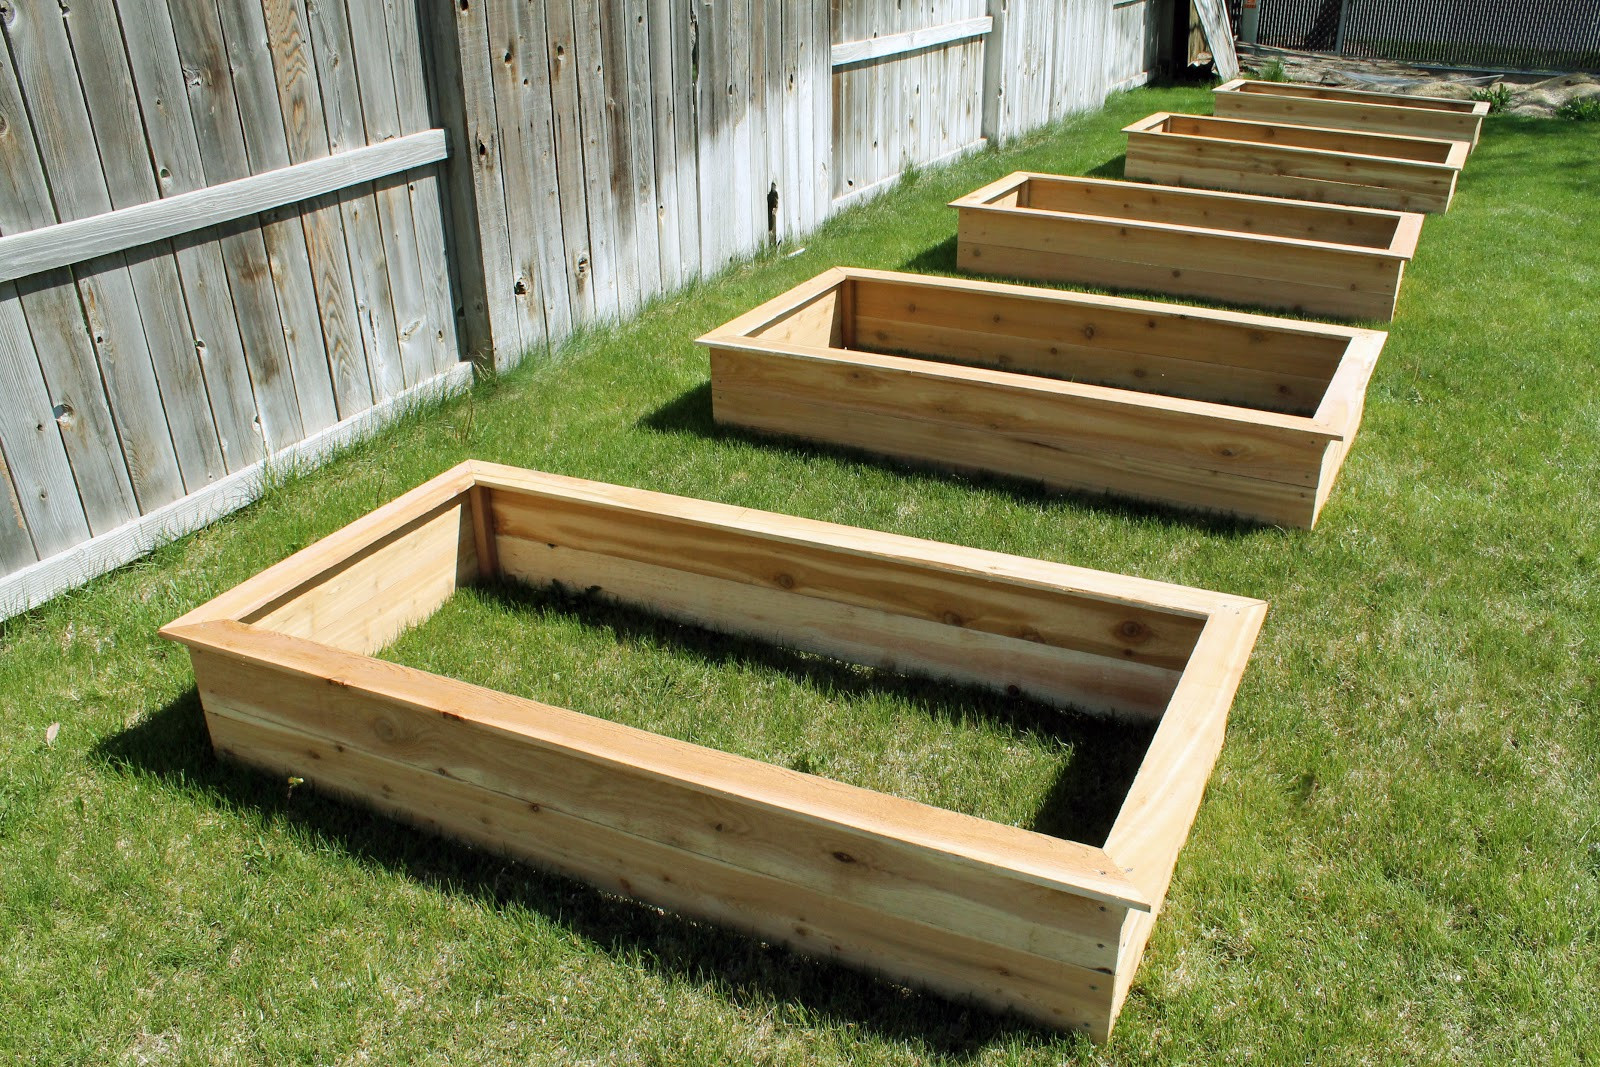 Best ideas about DIY Raised Beds Garden . Save or Pin Our DIY Raised Garden Beds Chris Loves Julia Now.